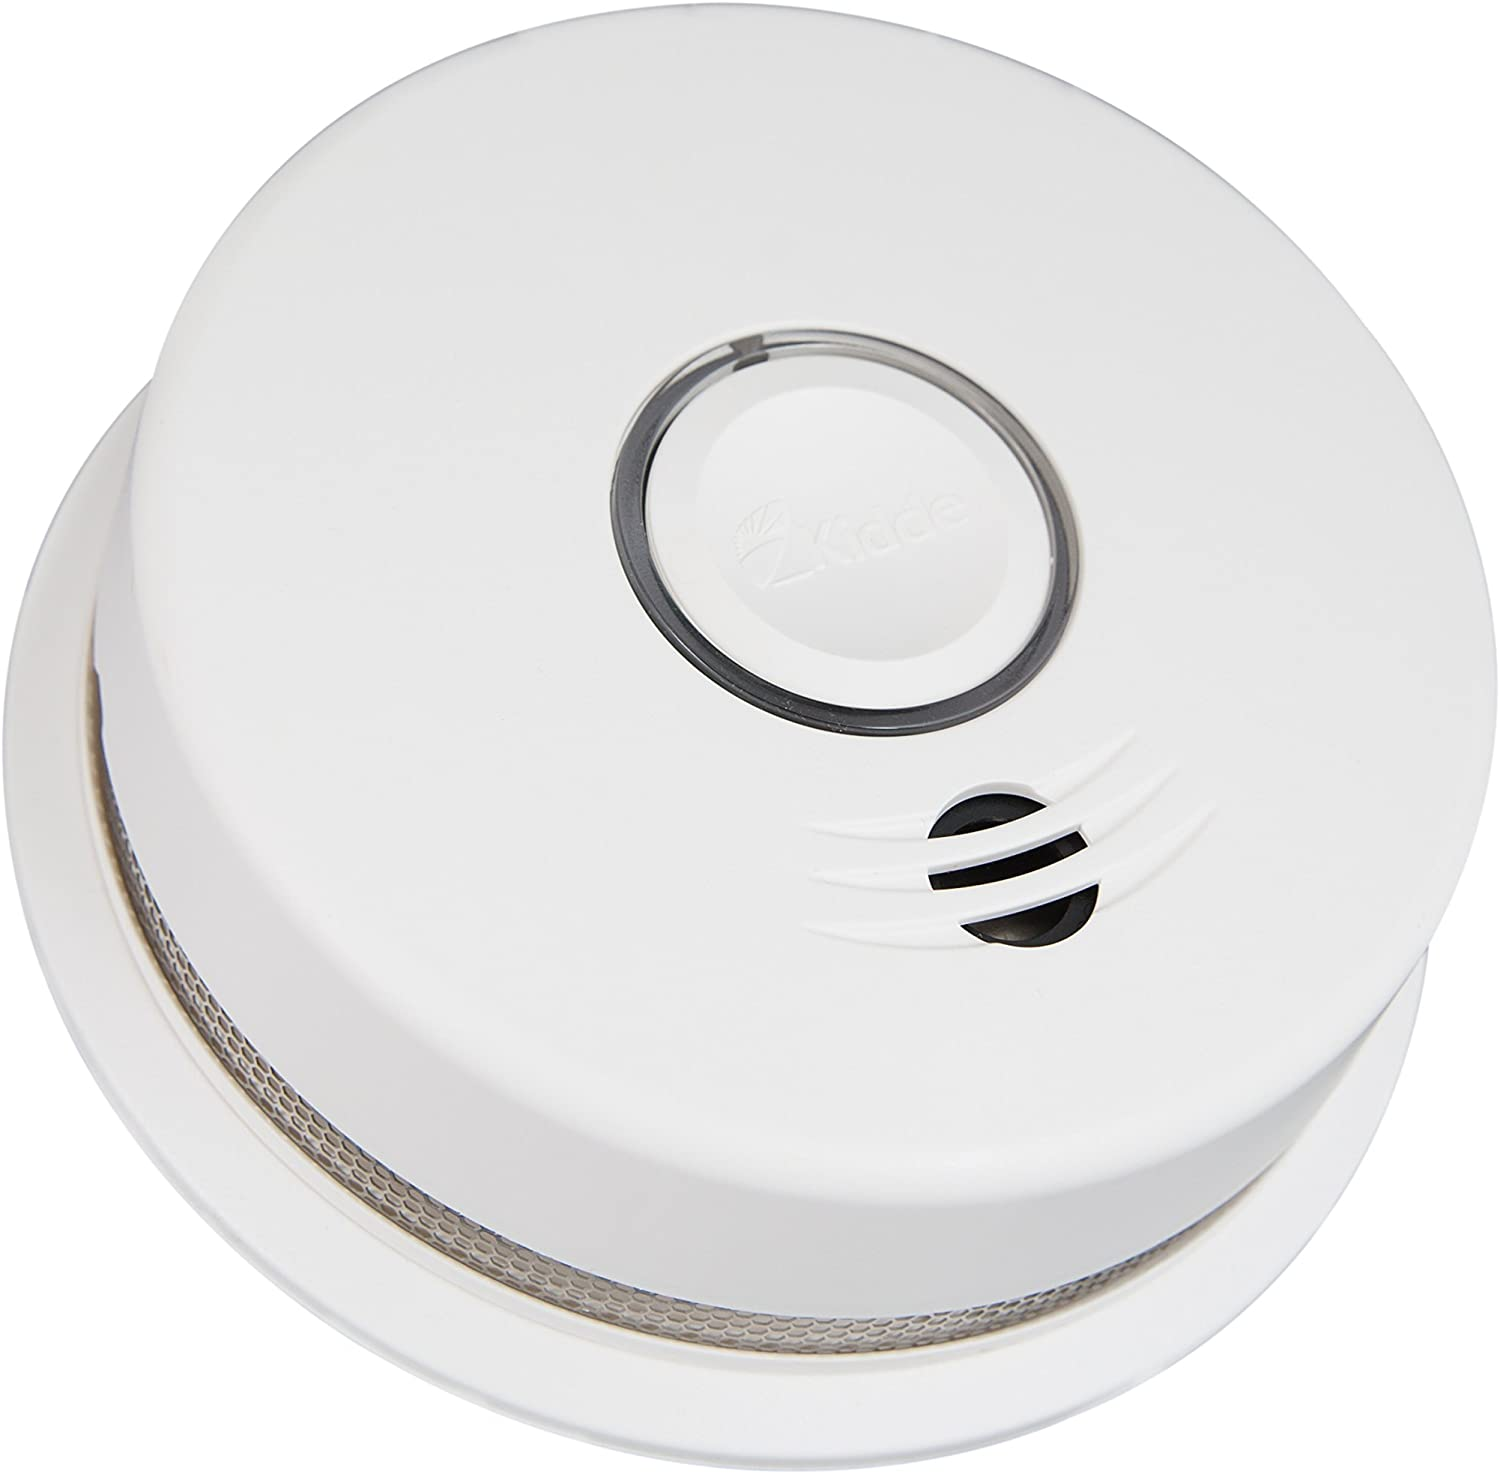 Kidde P4010DCSCO-W Wire-Free Interconnect Combination CO 10-Year Sealed-in Lithium Battery Smoke Alarm